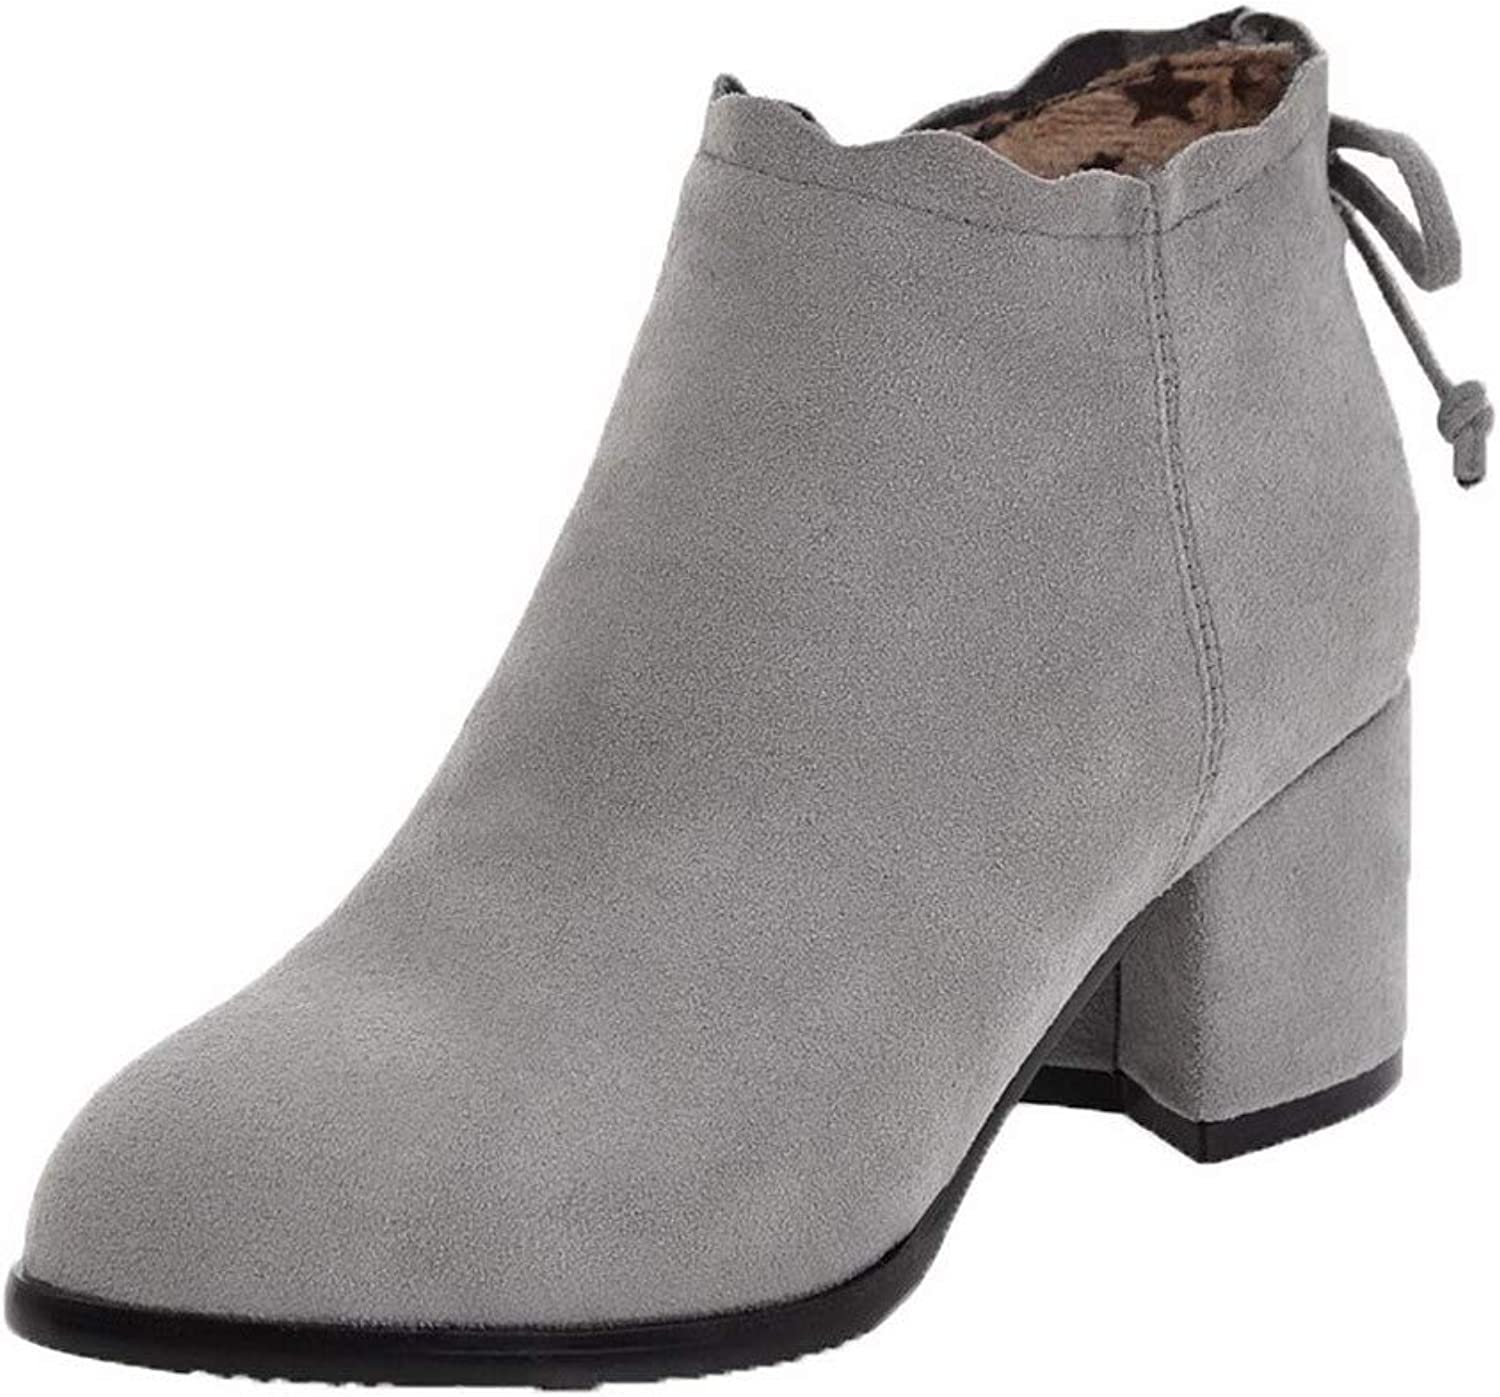 AllhqFashion Women's Frosted Round-Toe Solid Low-Top Kitten-Heels Boots, FBUXD133352